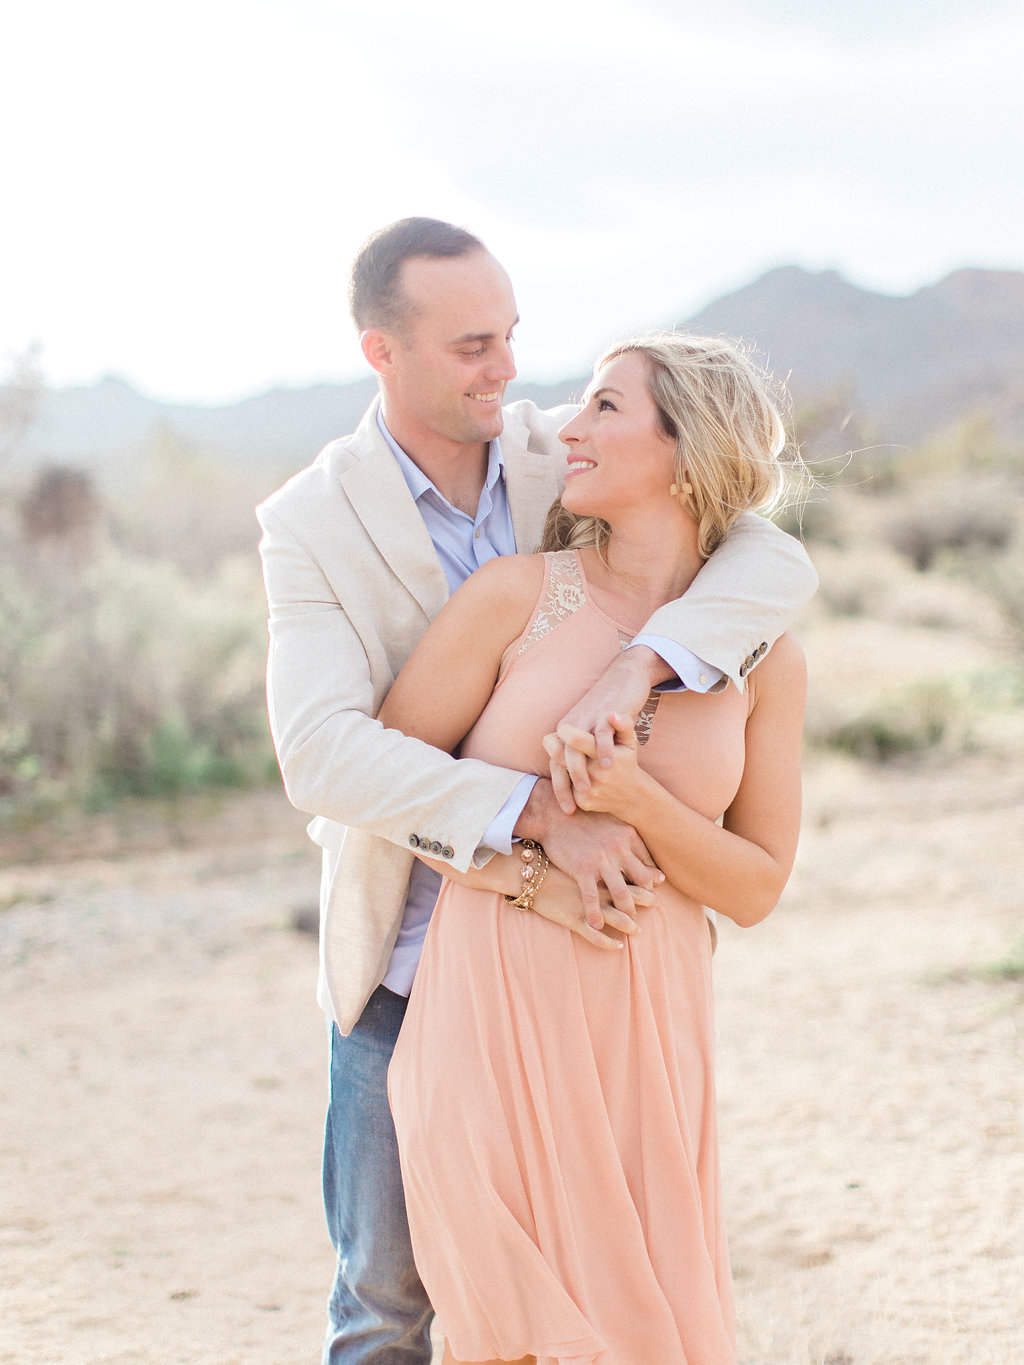 Joshua Tree Engagement Session | What to Wear for Pictures | Southern California Wedding Photographer | Mastin Labs Fuji Film | Fine Art Photographer | Desert Shoot | Couple in Love | Marine.jpg